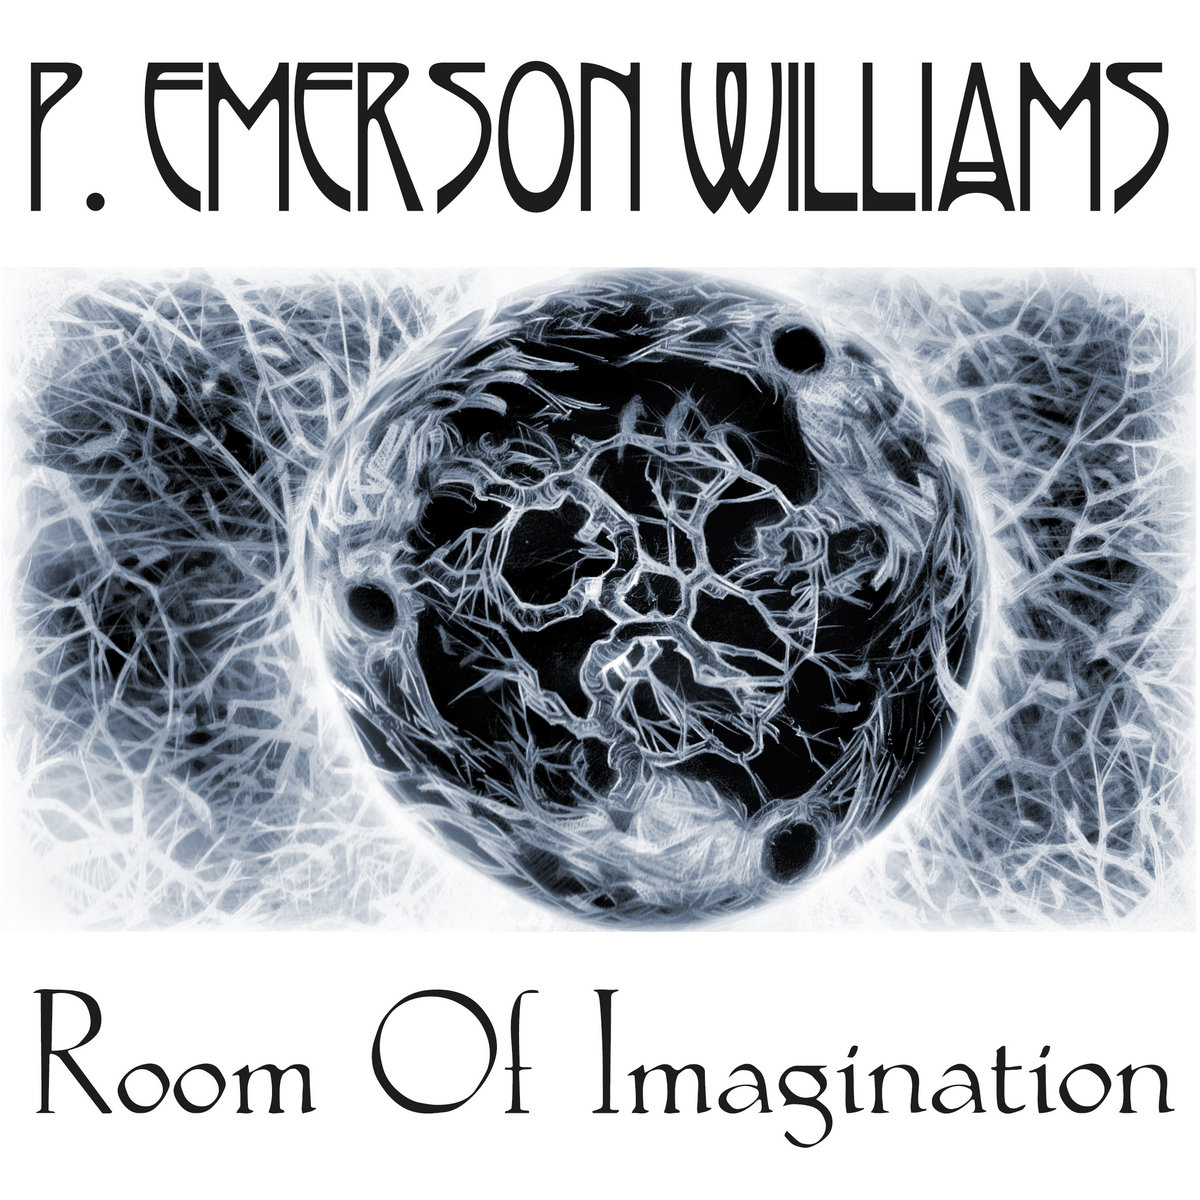 P.Emerson Williams cover